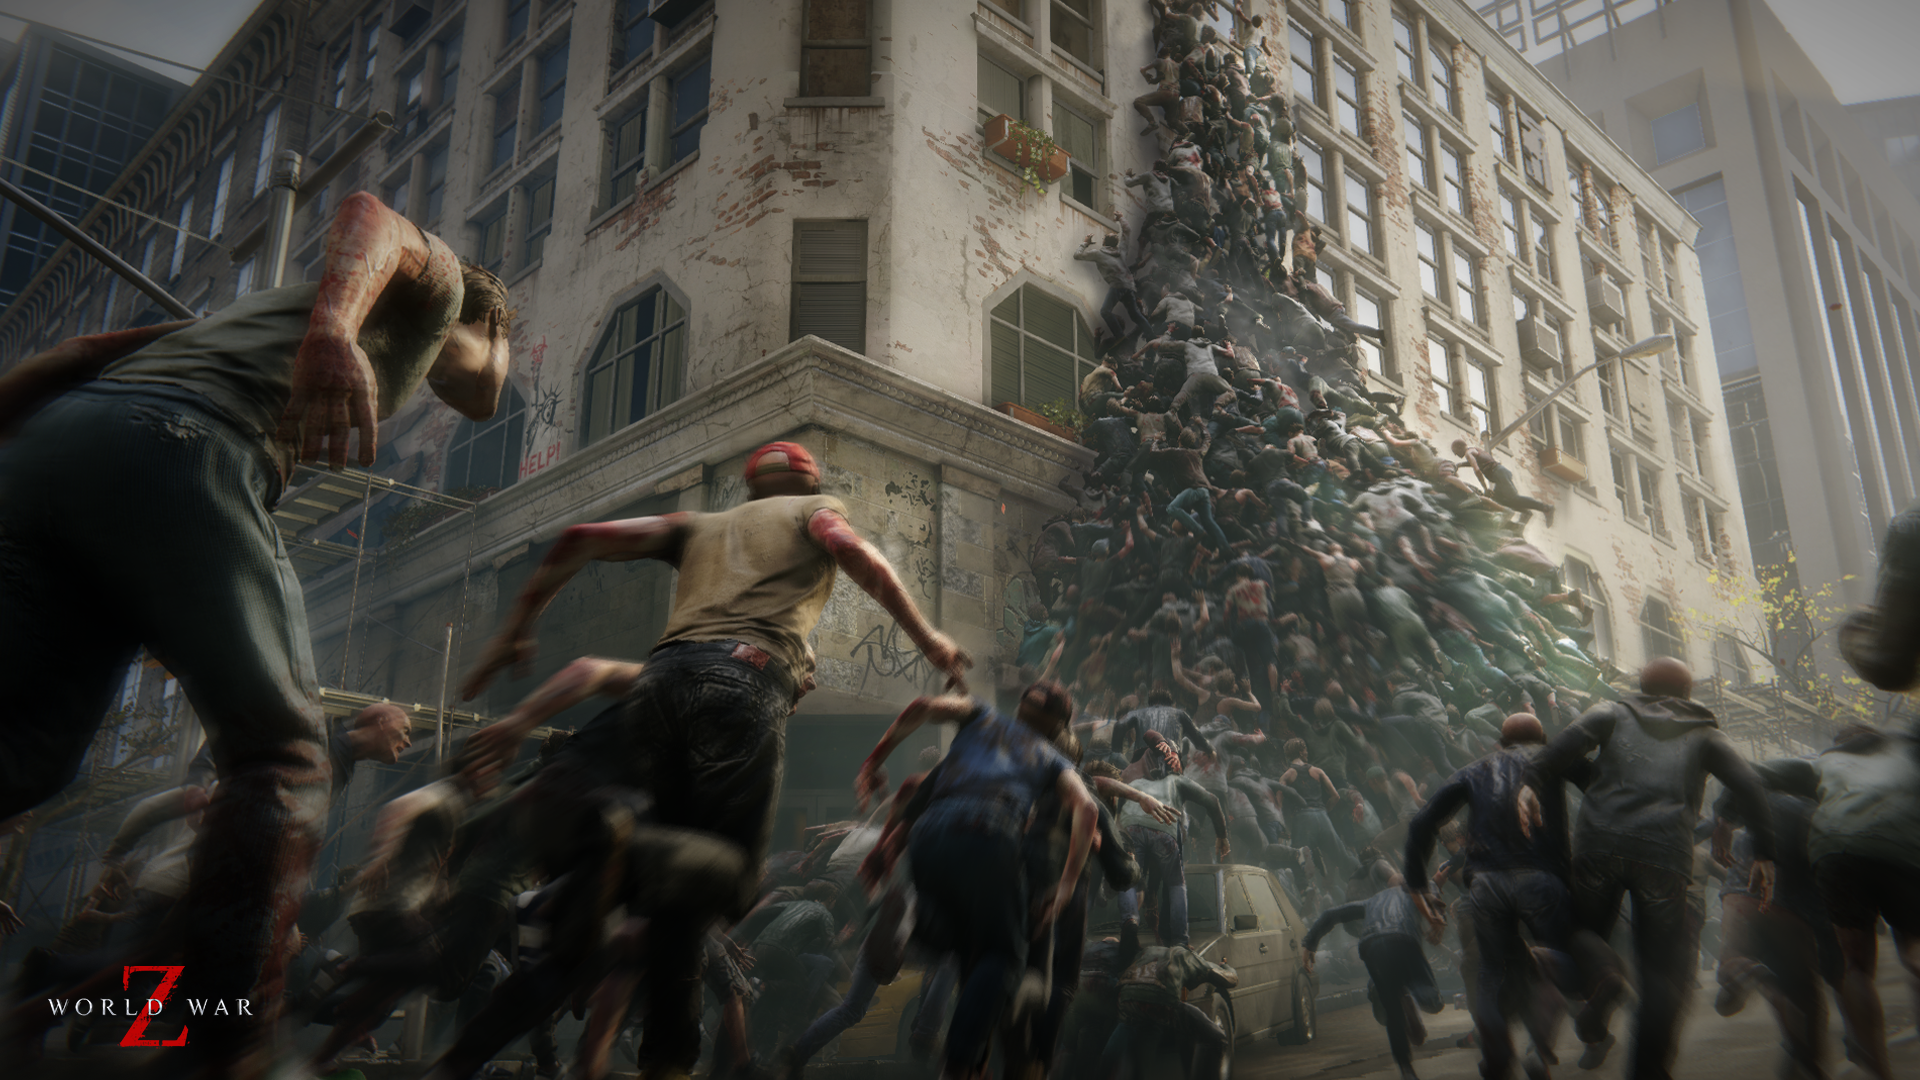 GDC 19 - World War Z